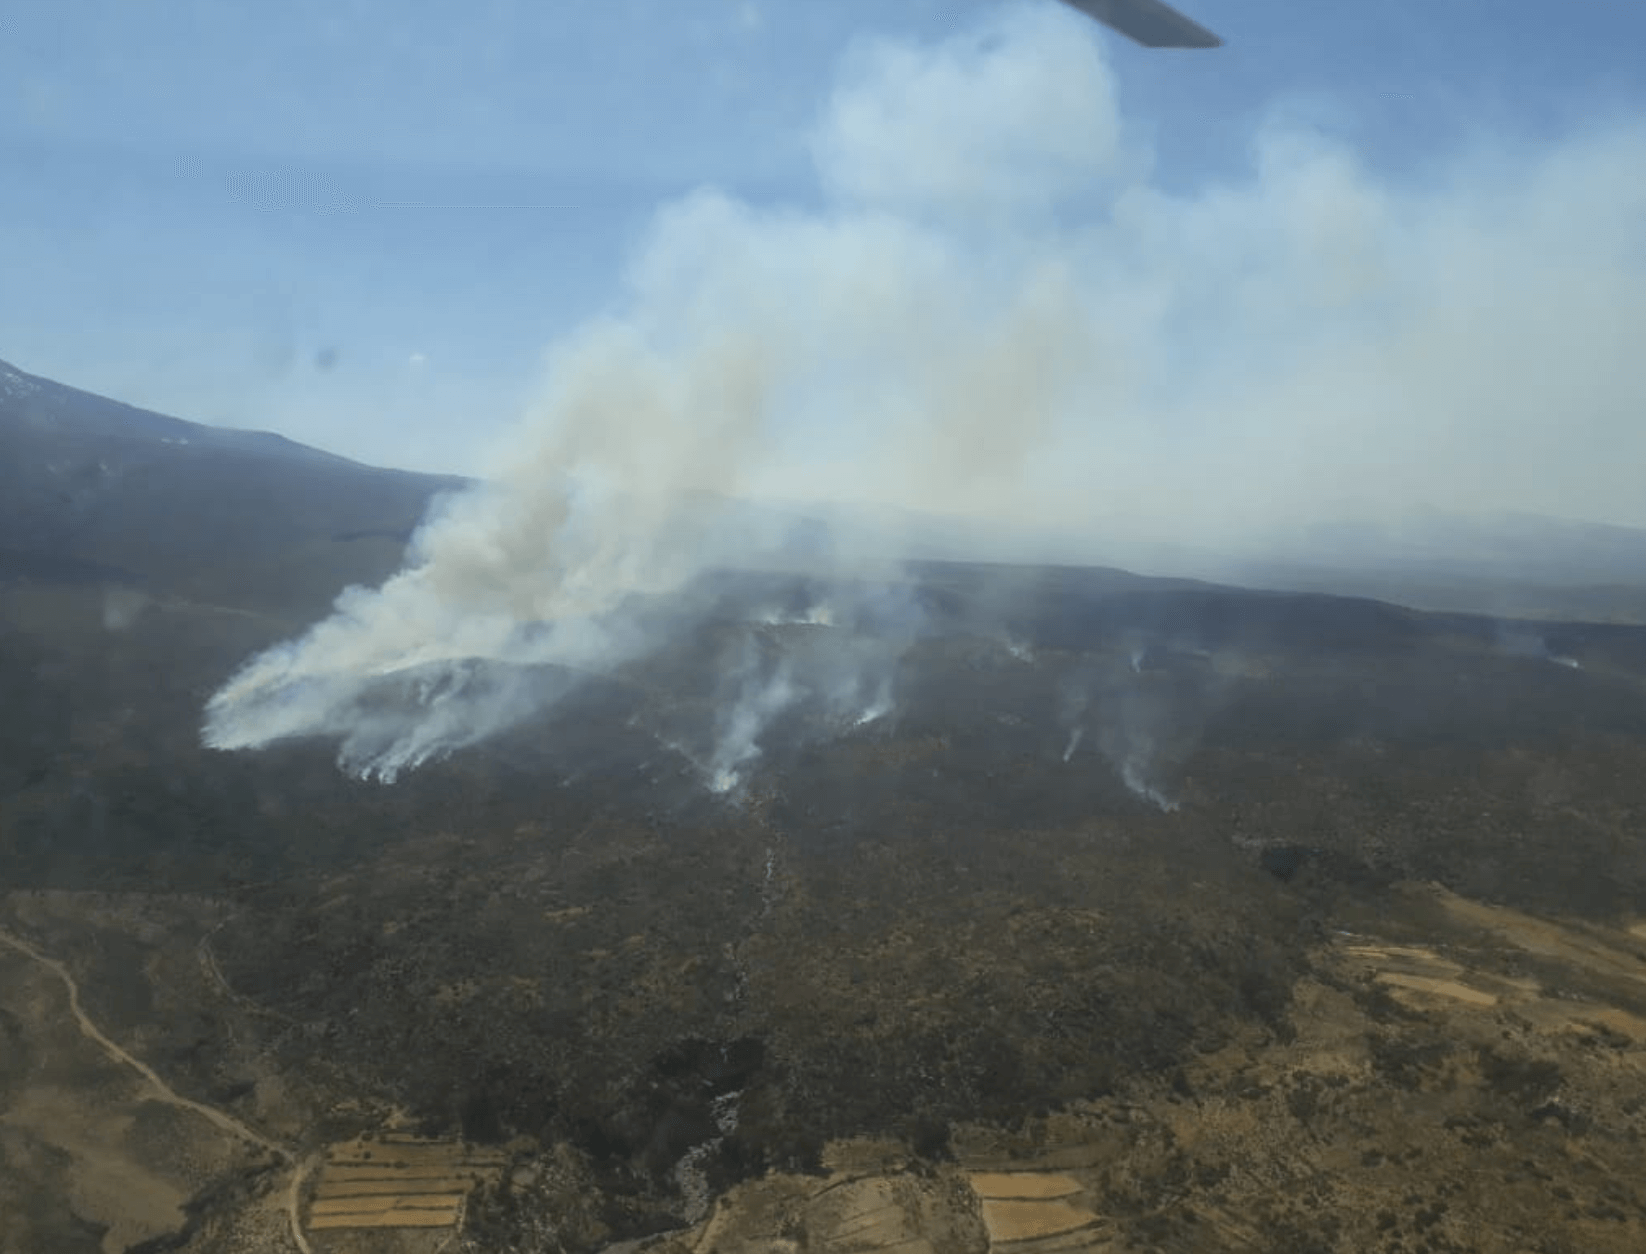 Authorities race to fight forest fire in Southern Peru